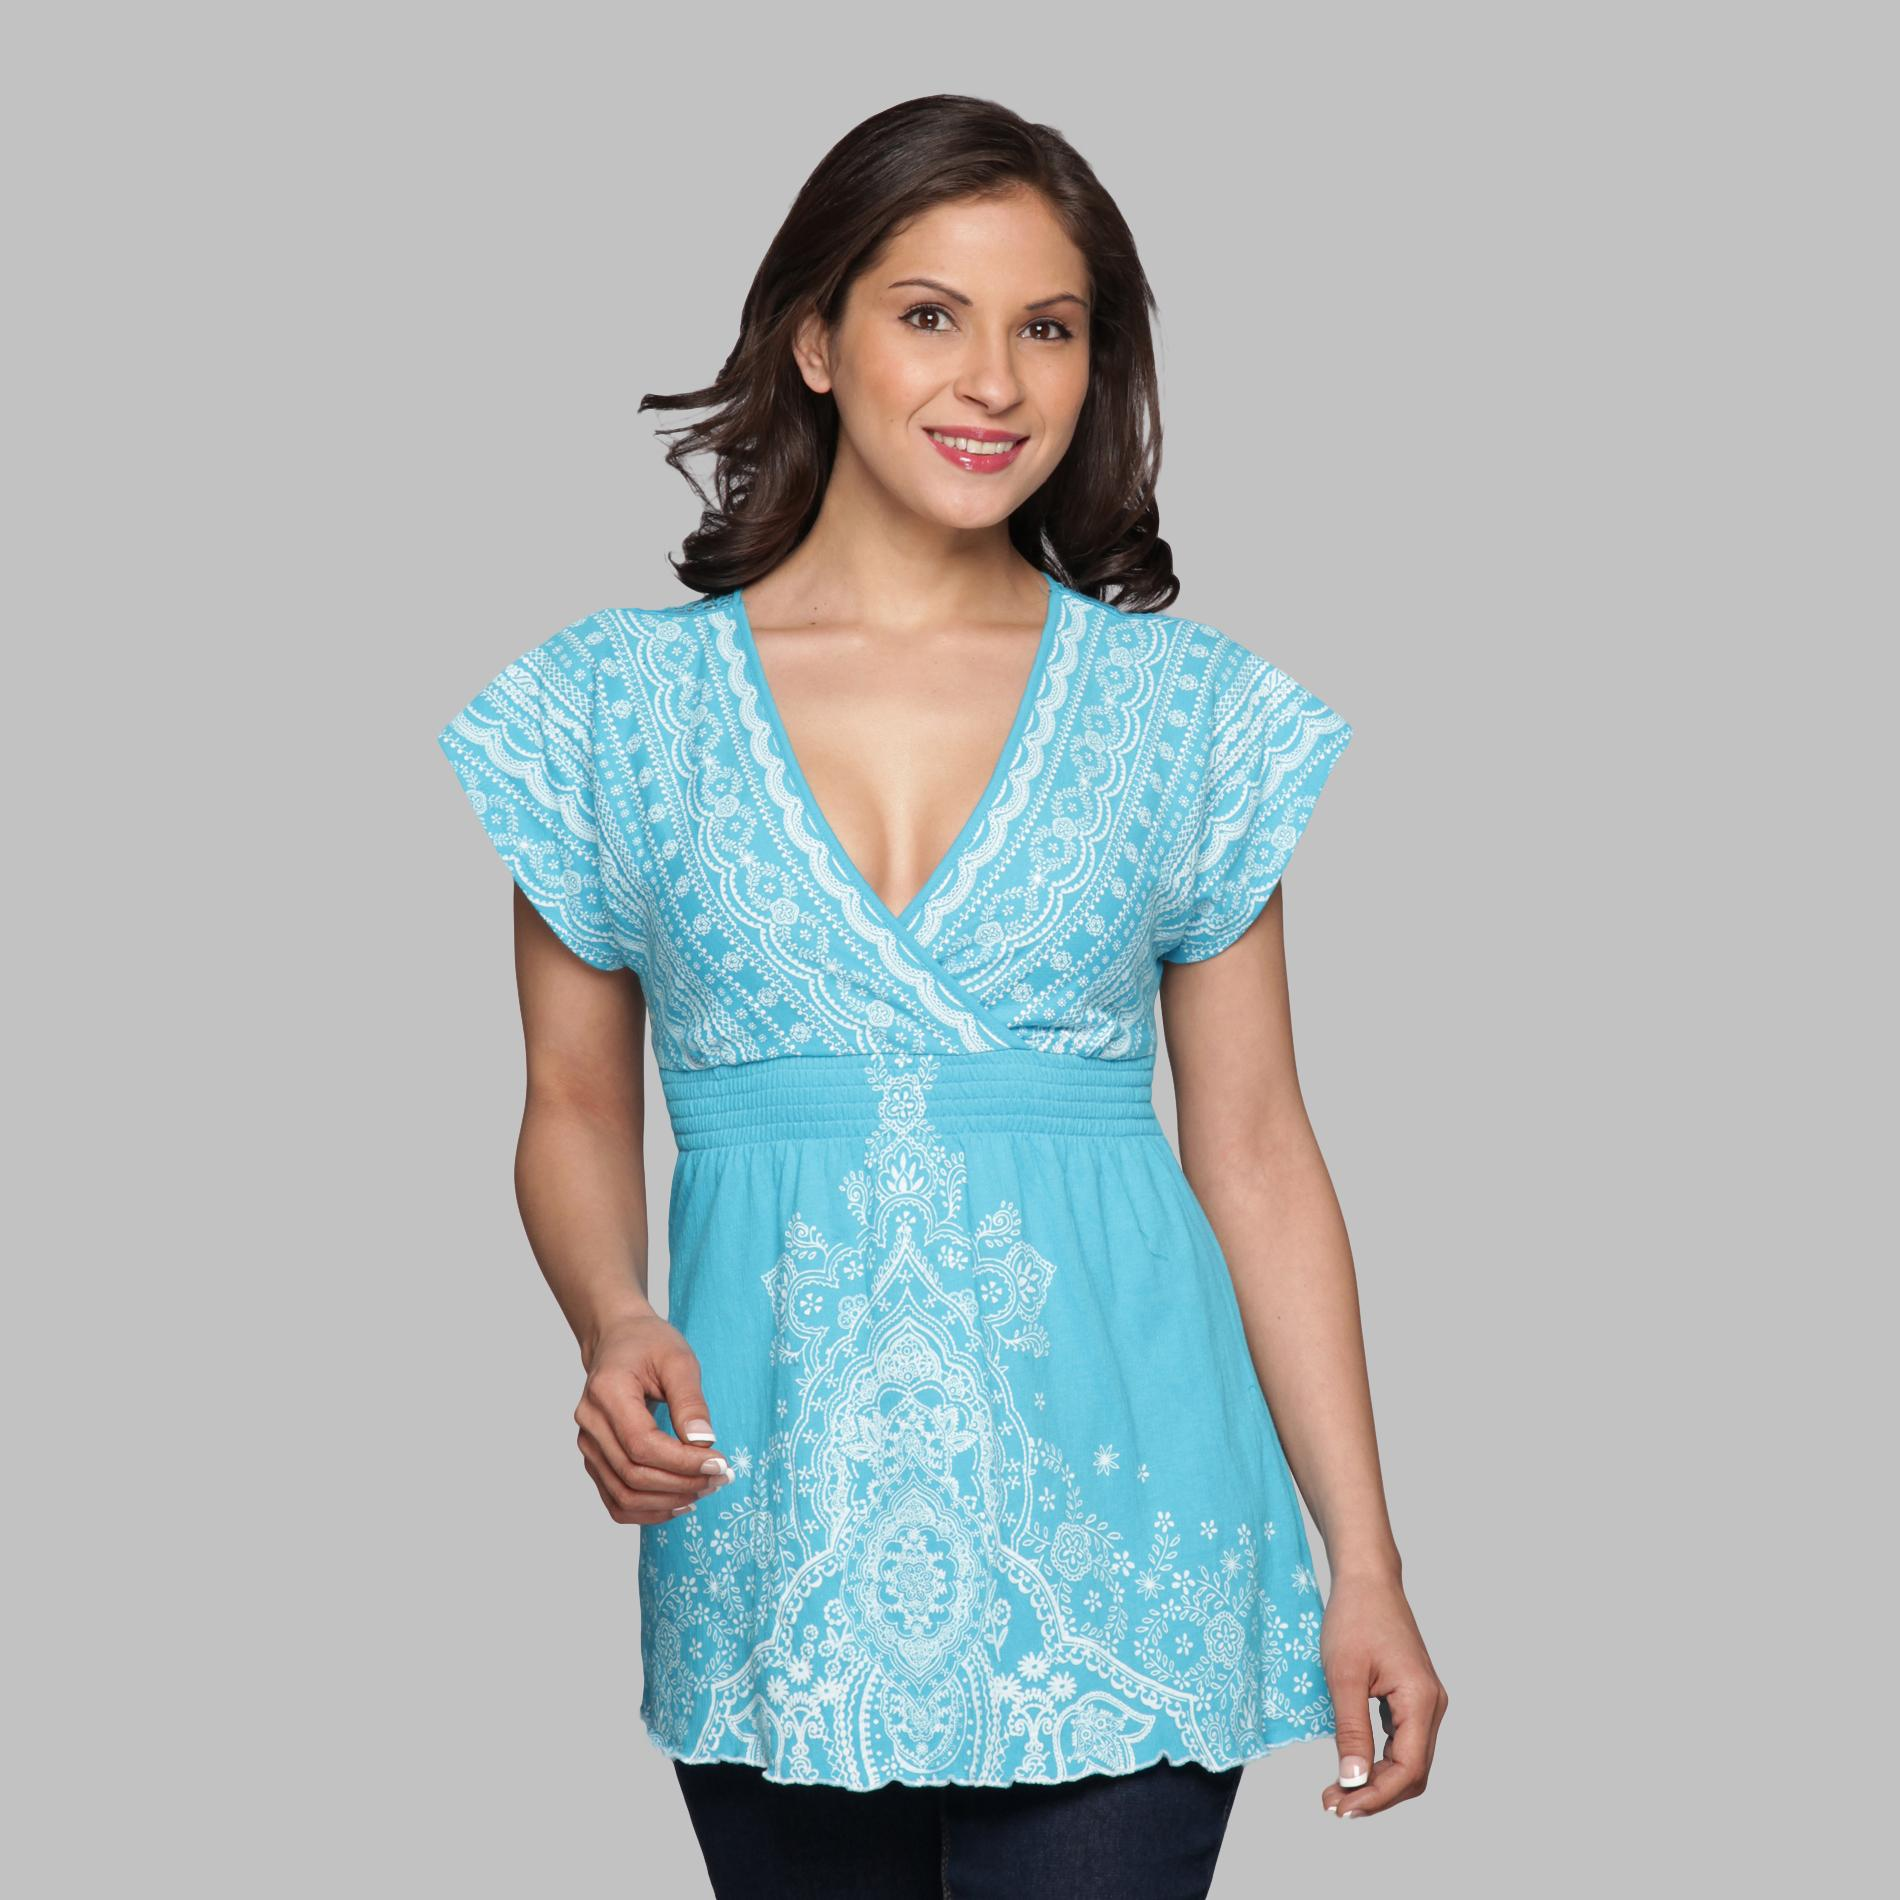 Almost Famous Women's Surplice Top - Crochet at Sears.com